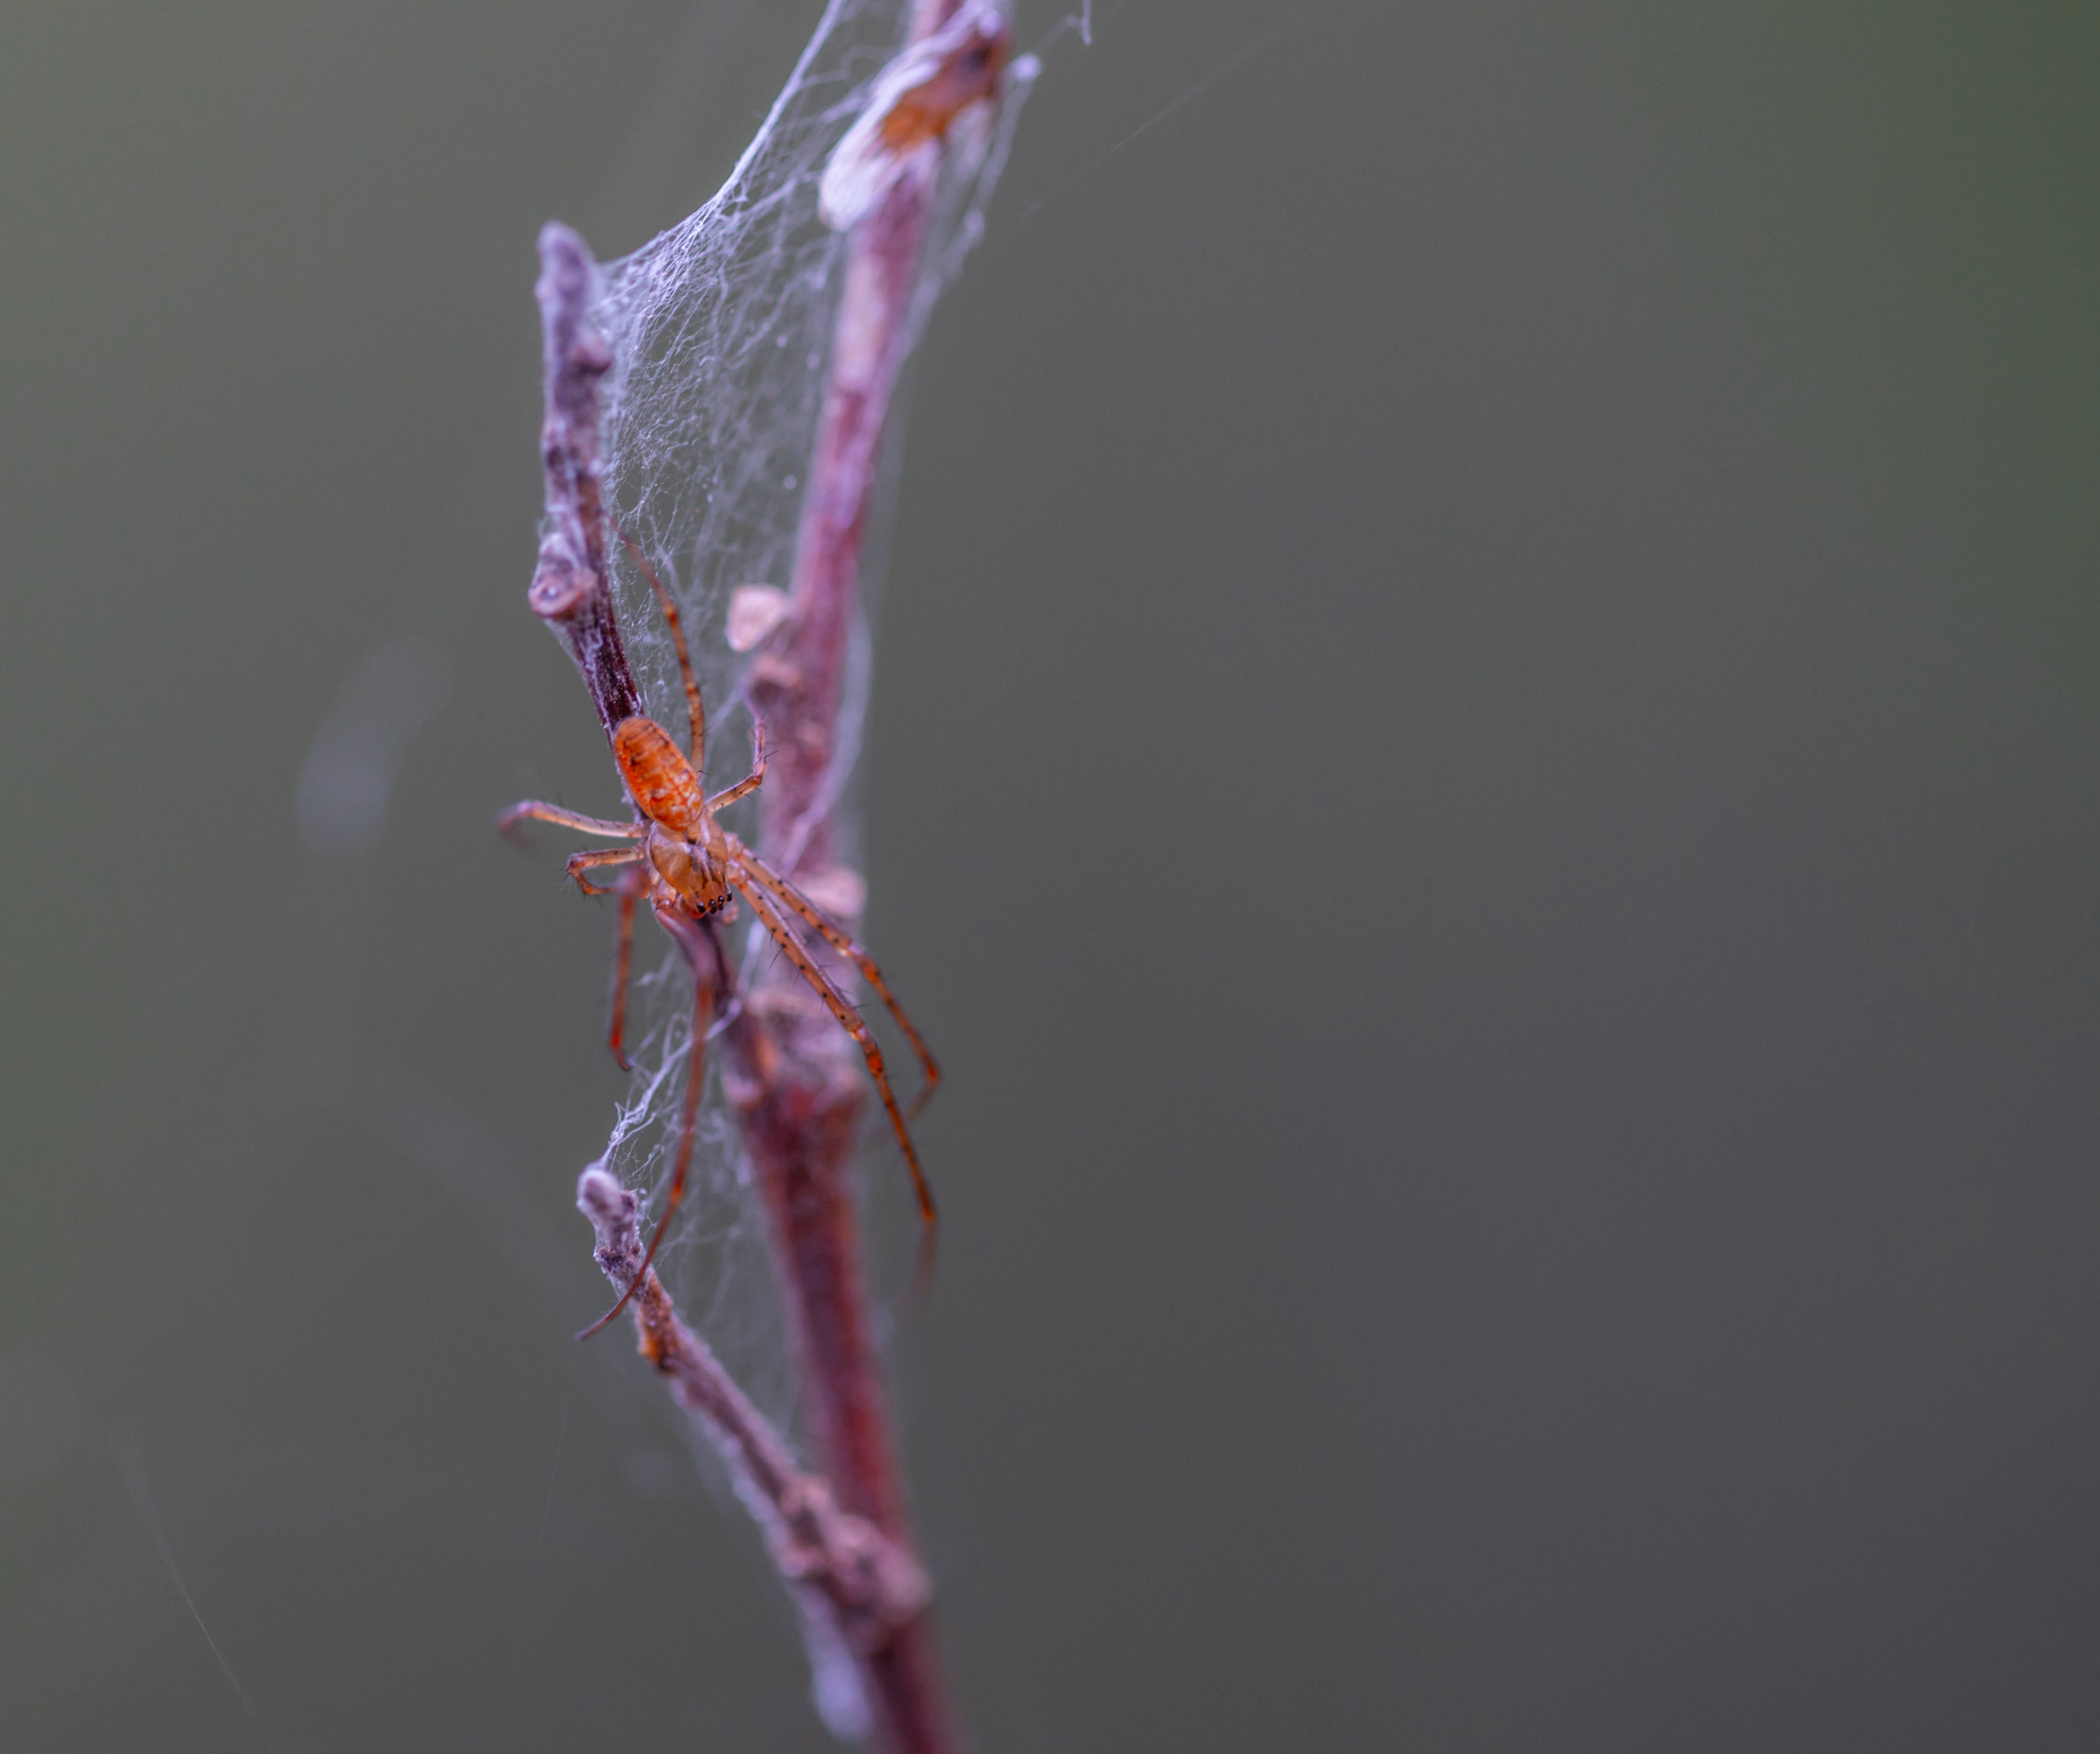 Selective Focus Photography of Brown Spider Perched on Brown Plant Stem